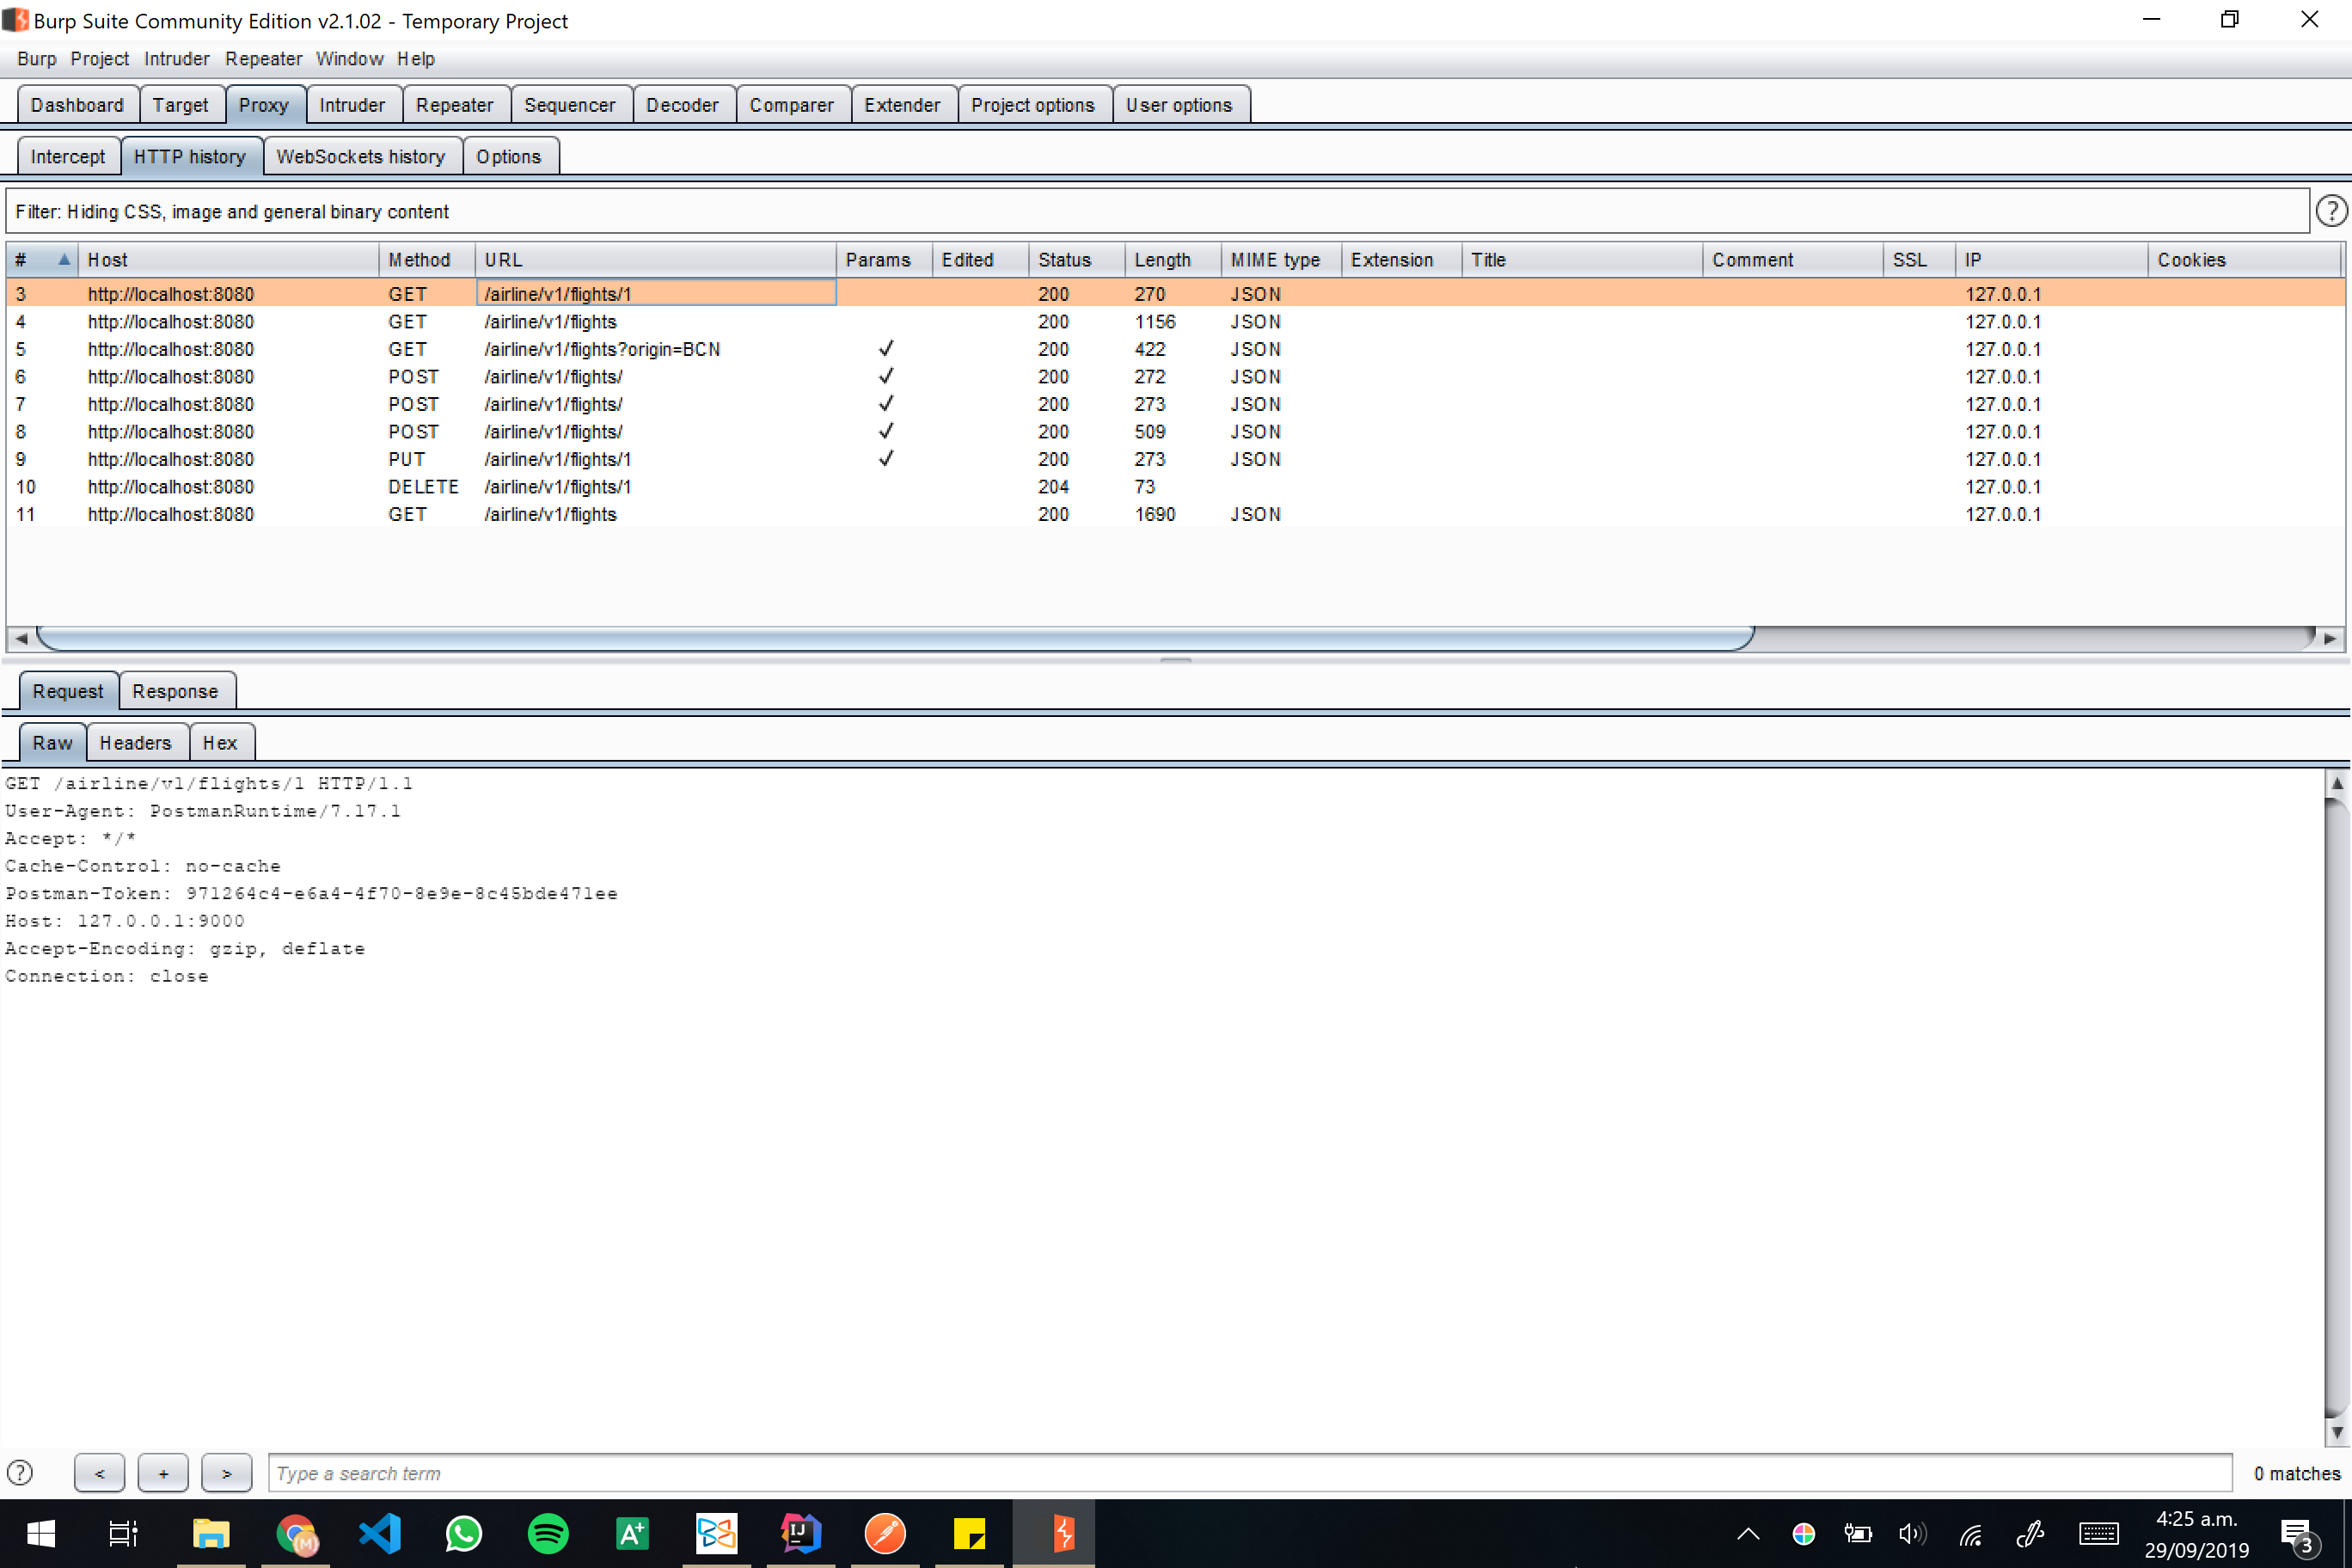 Burp screenshot 05